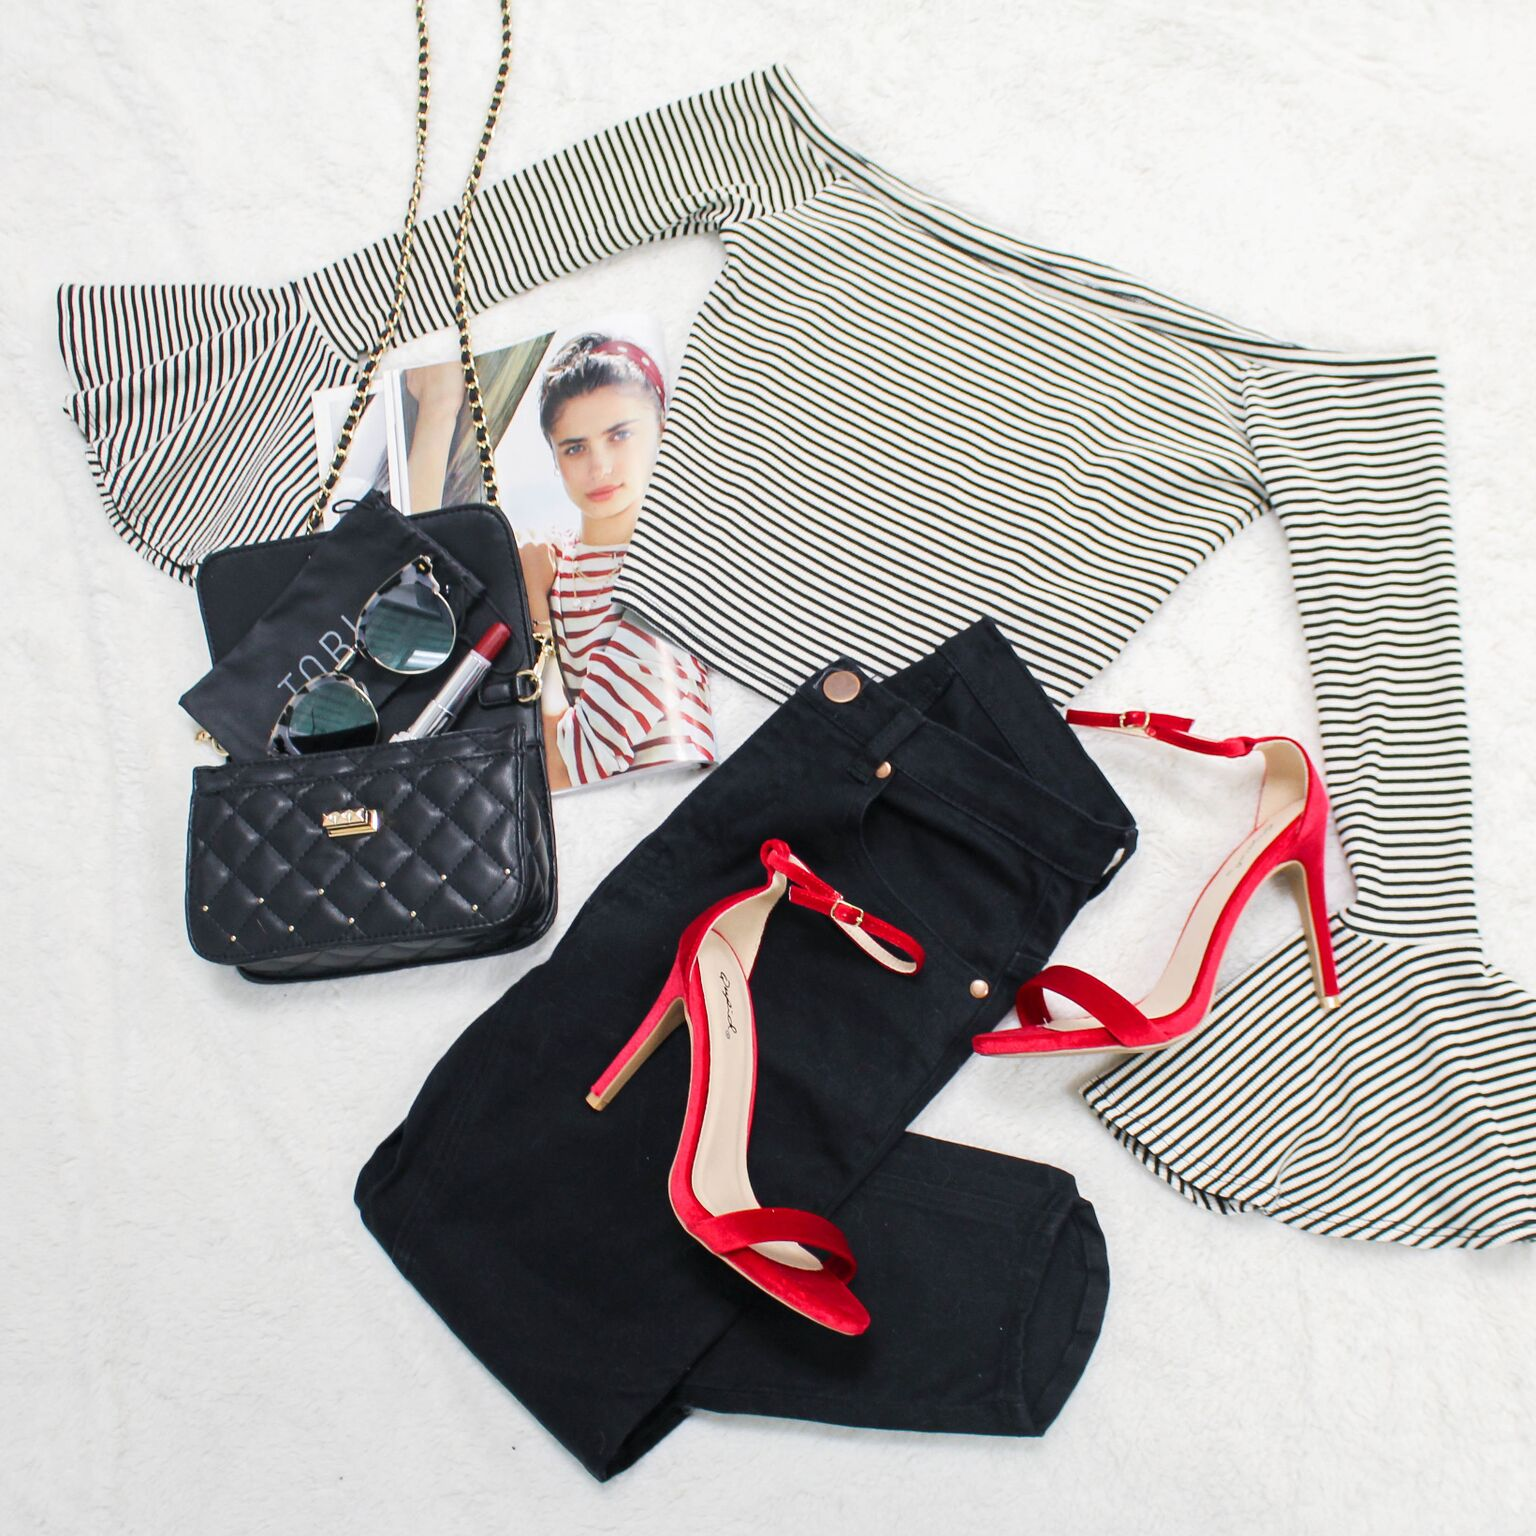 Shop Valentine's Day outfits for going out and about at Tobi!